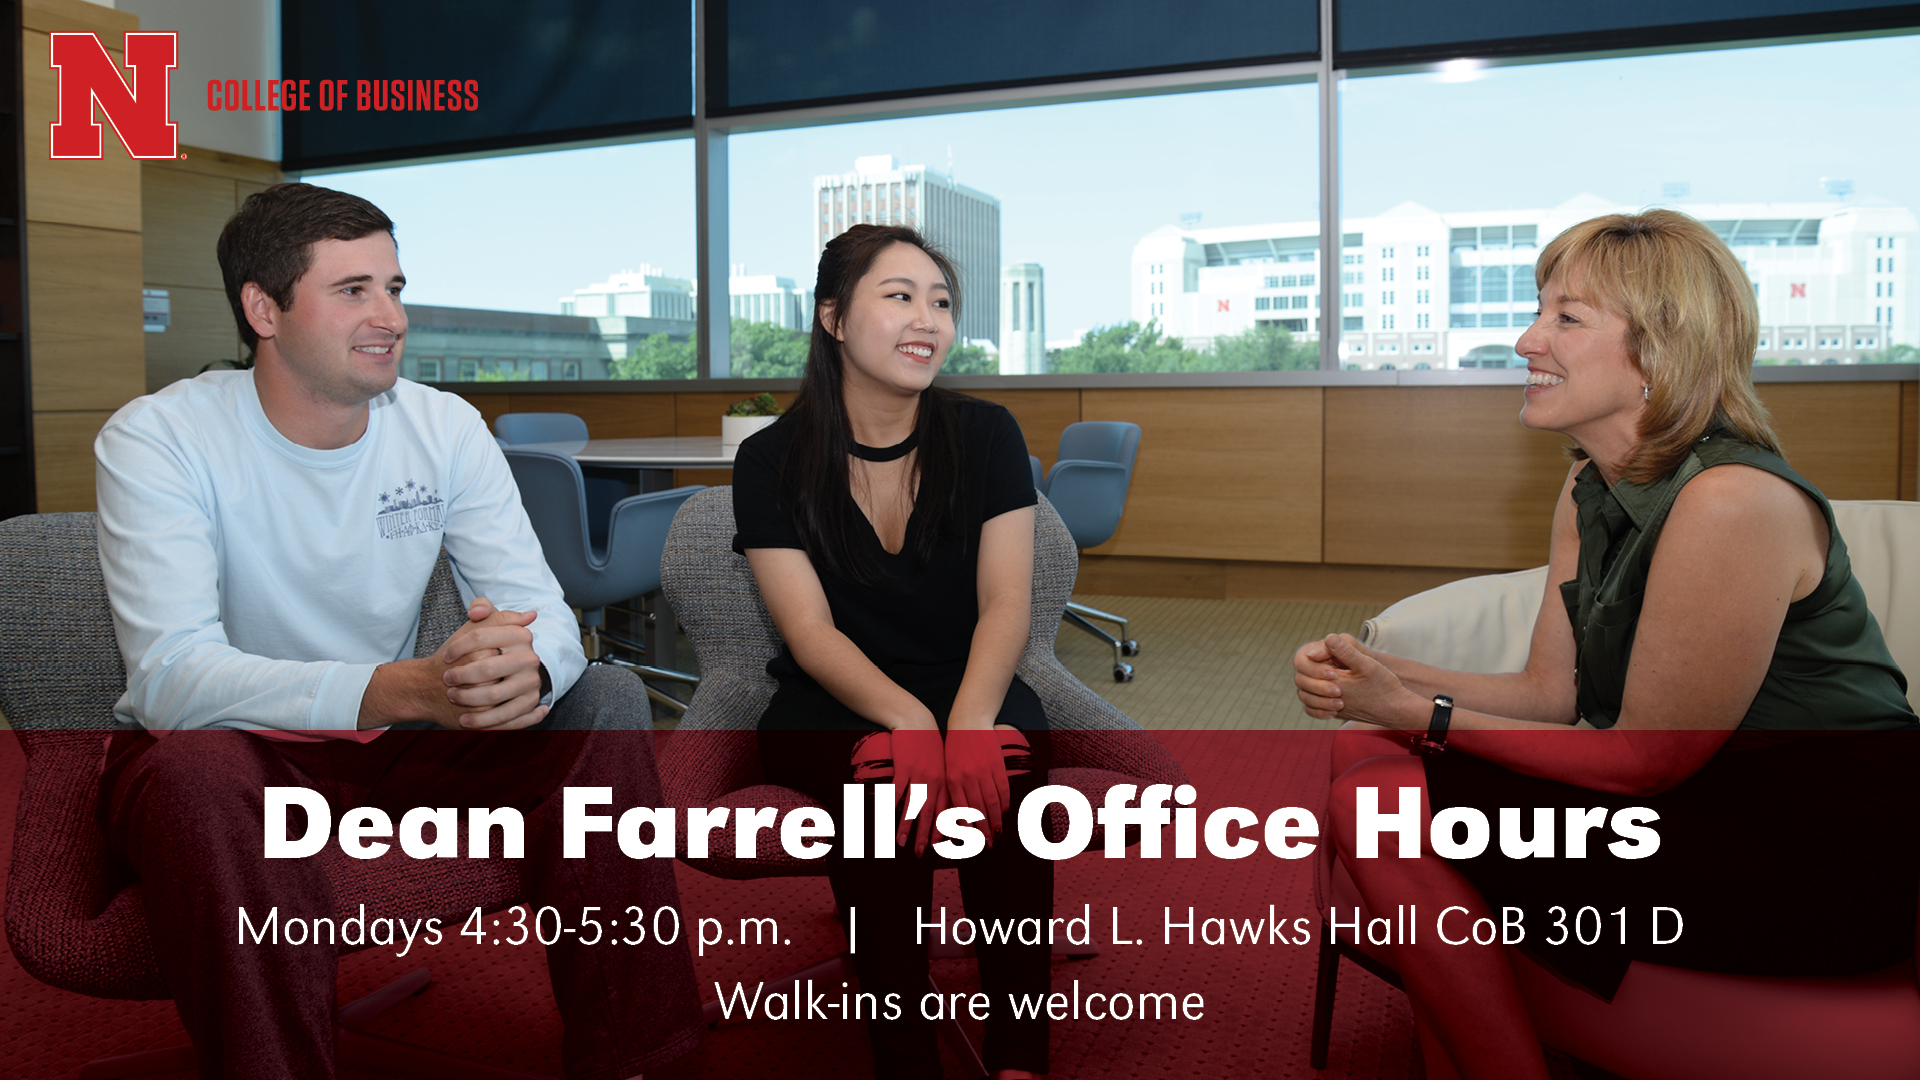 Stop by to talk with Dean Farrell